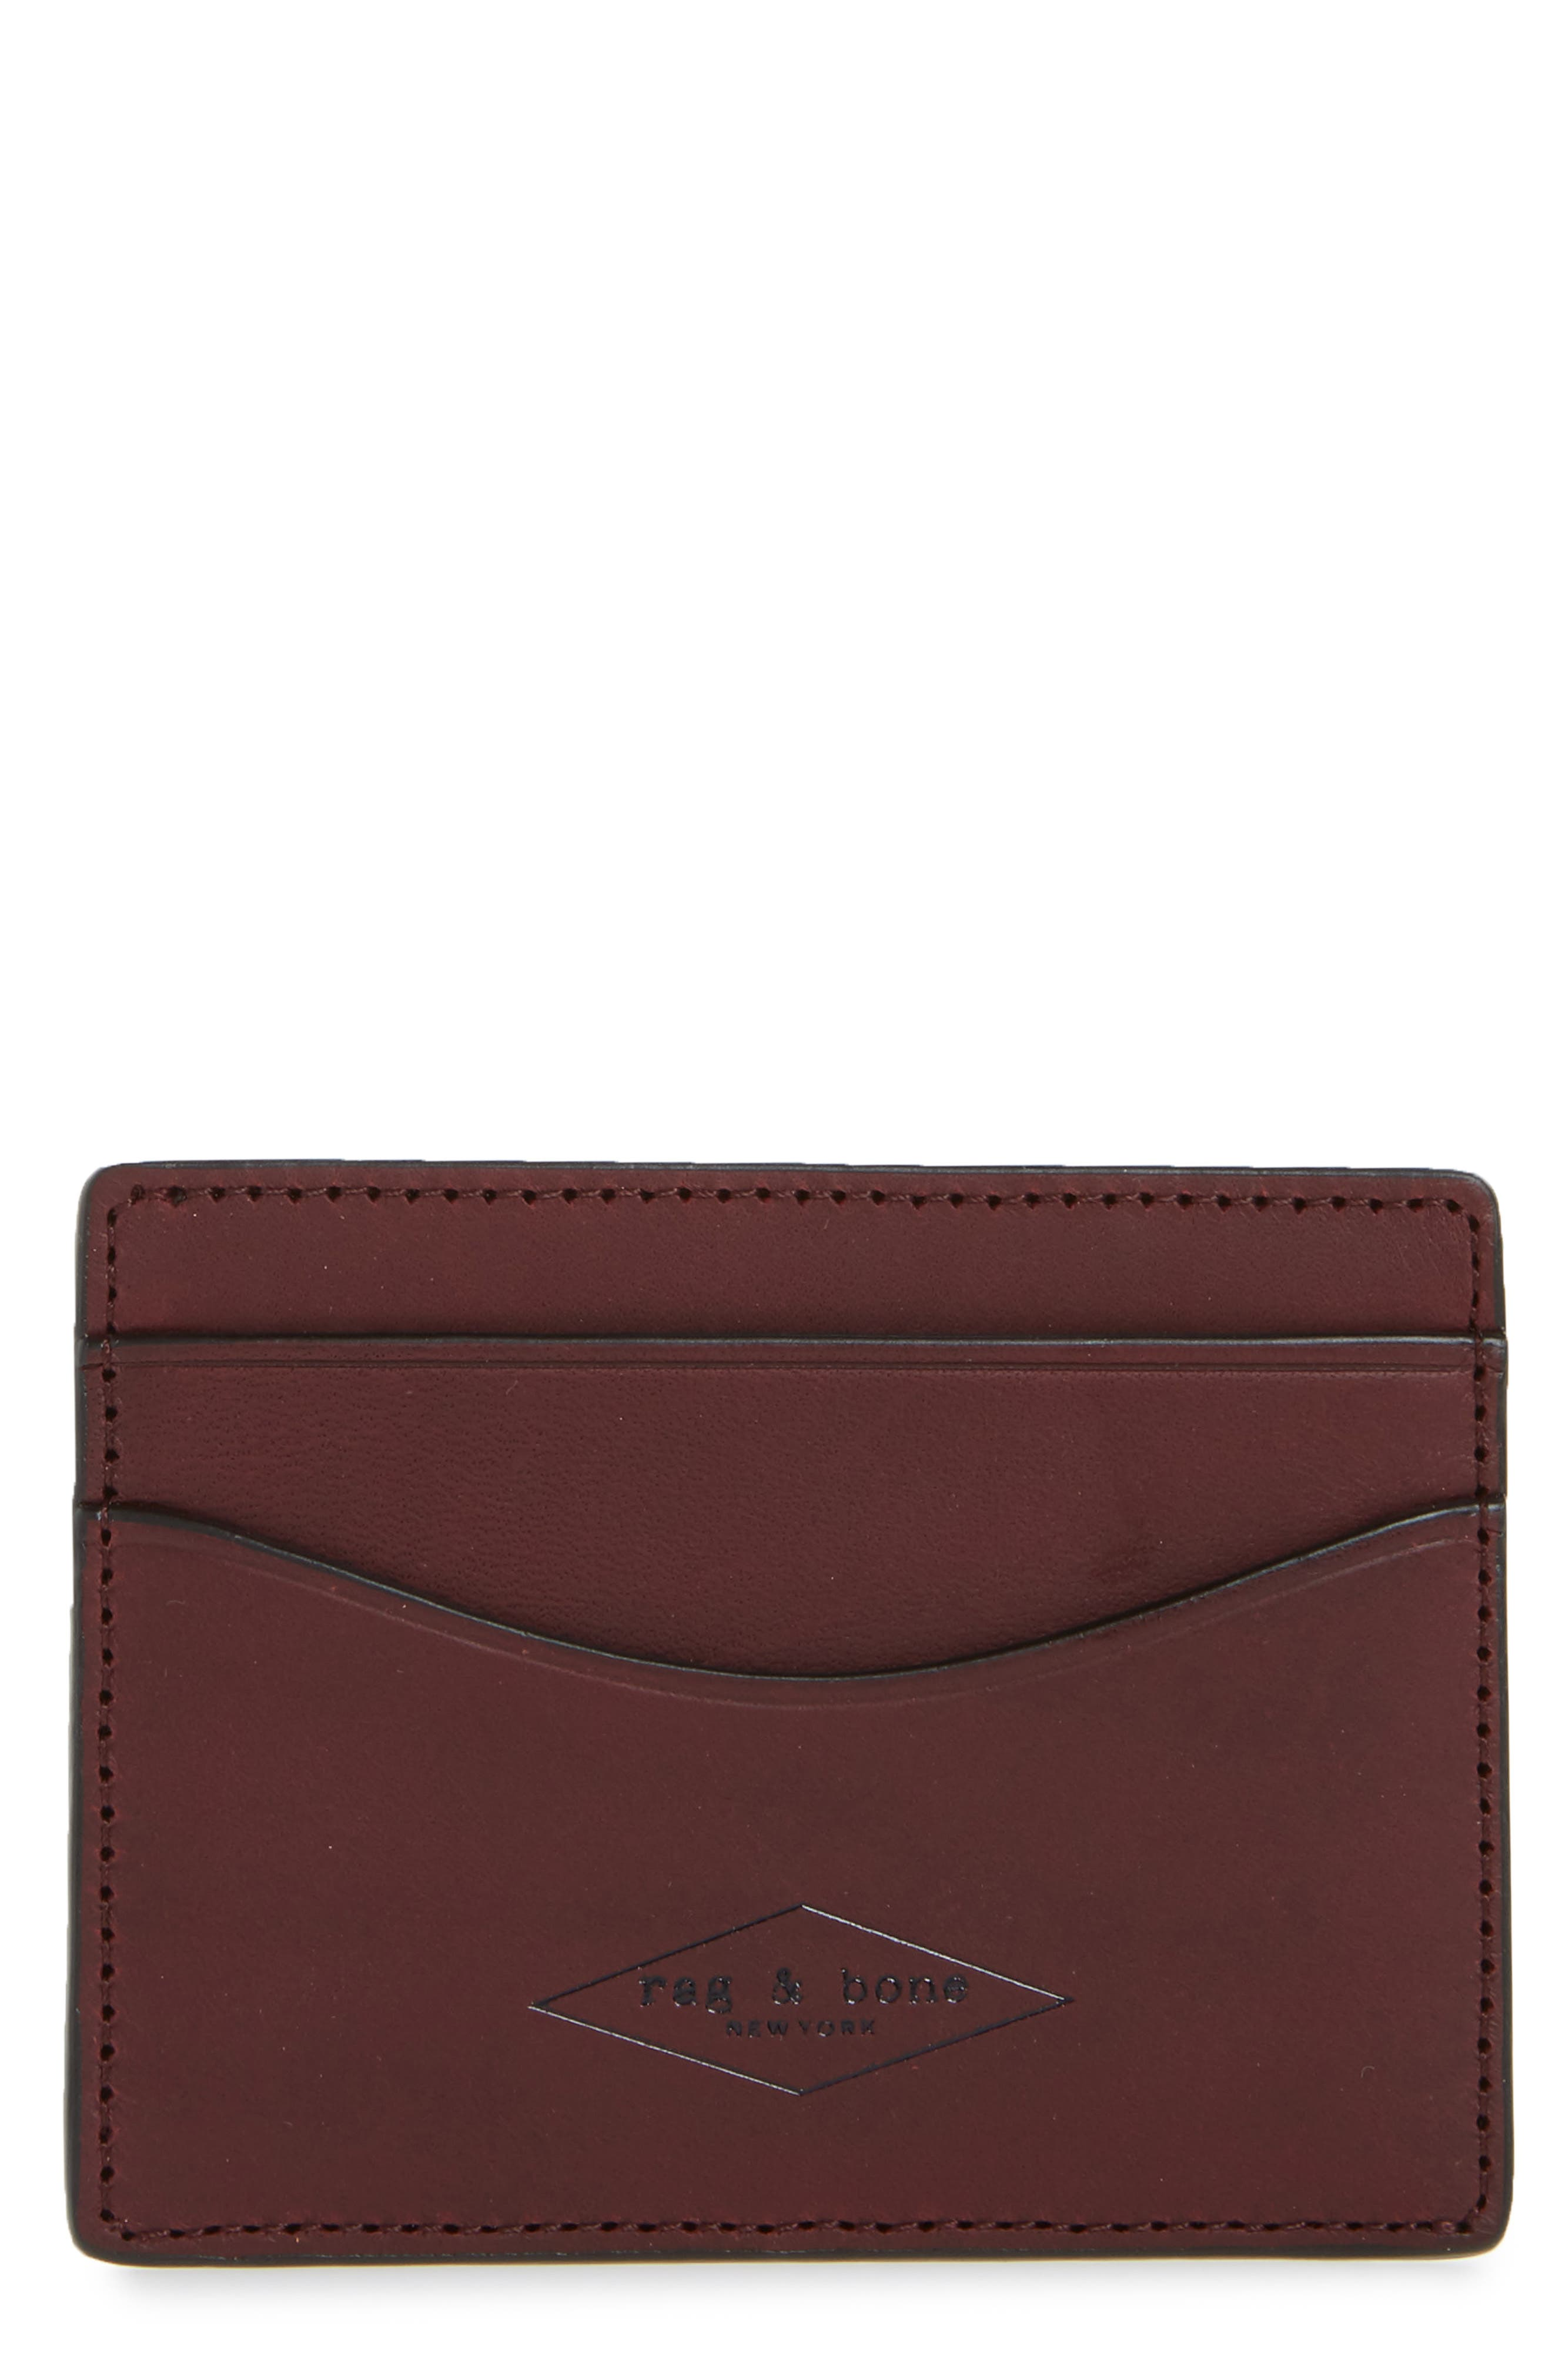 Hampshire Leather Card Case,                         Main,                         color, Ox Blood